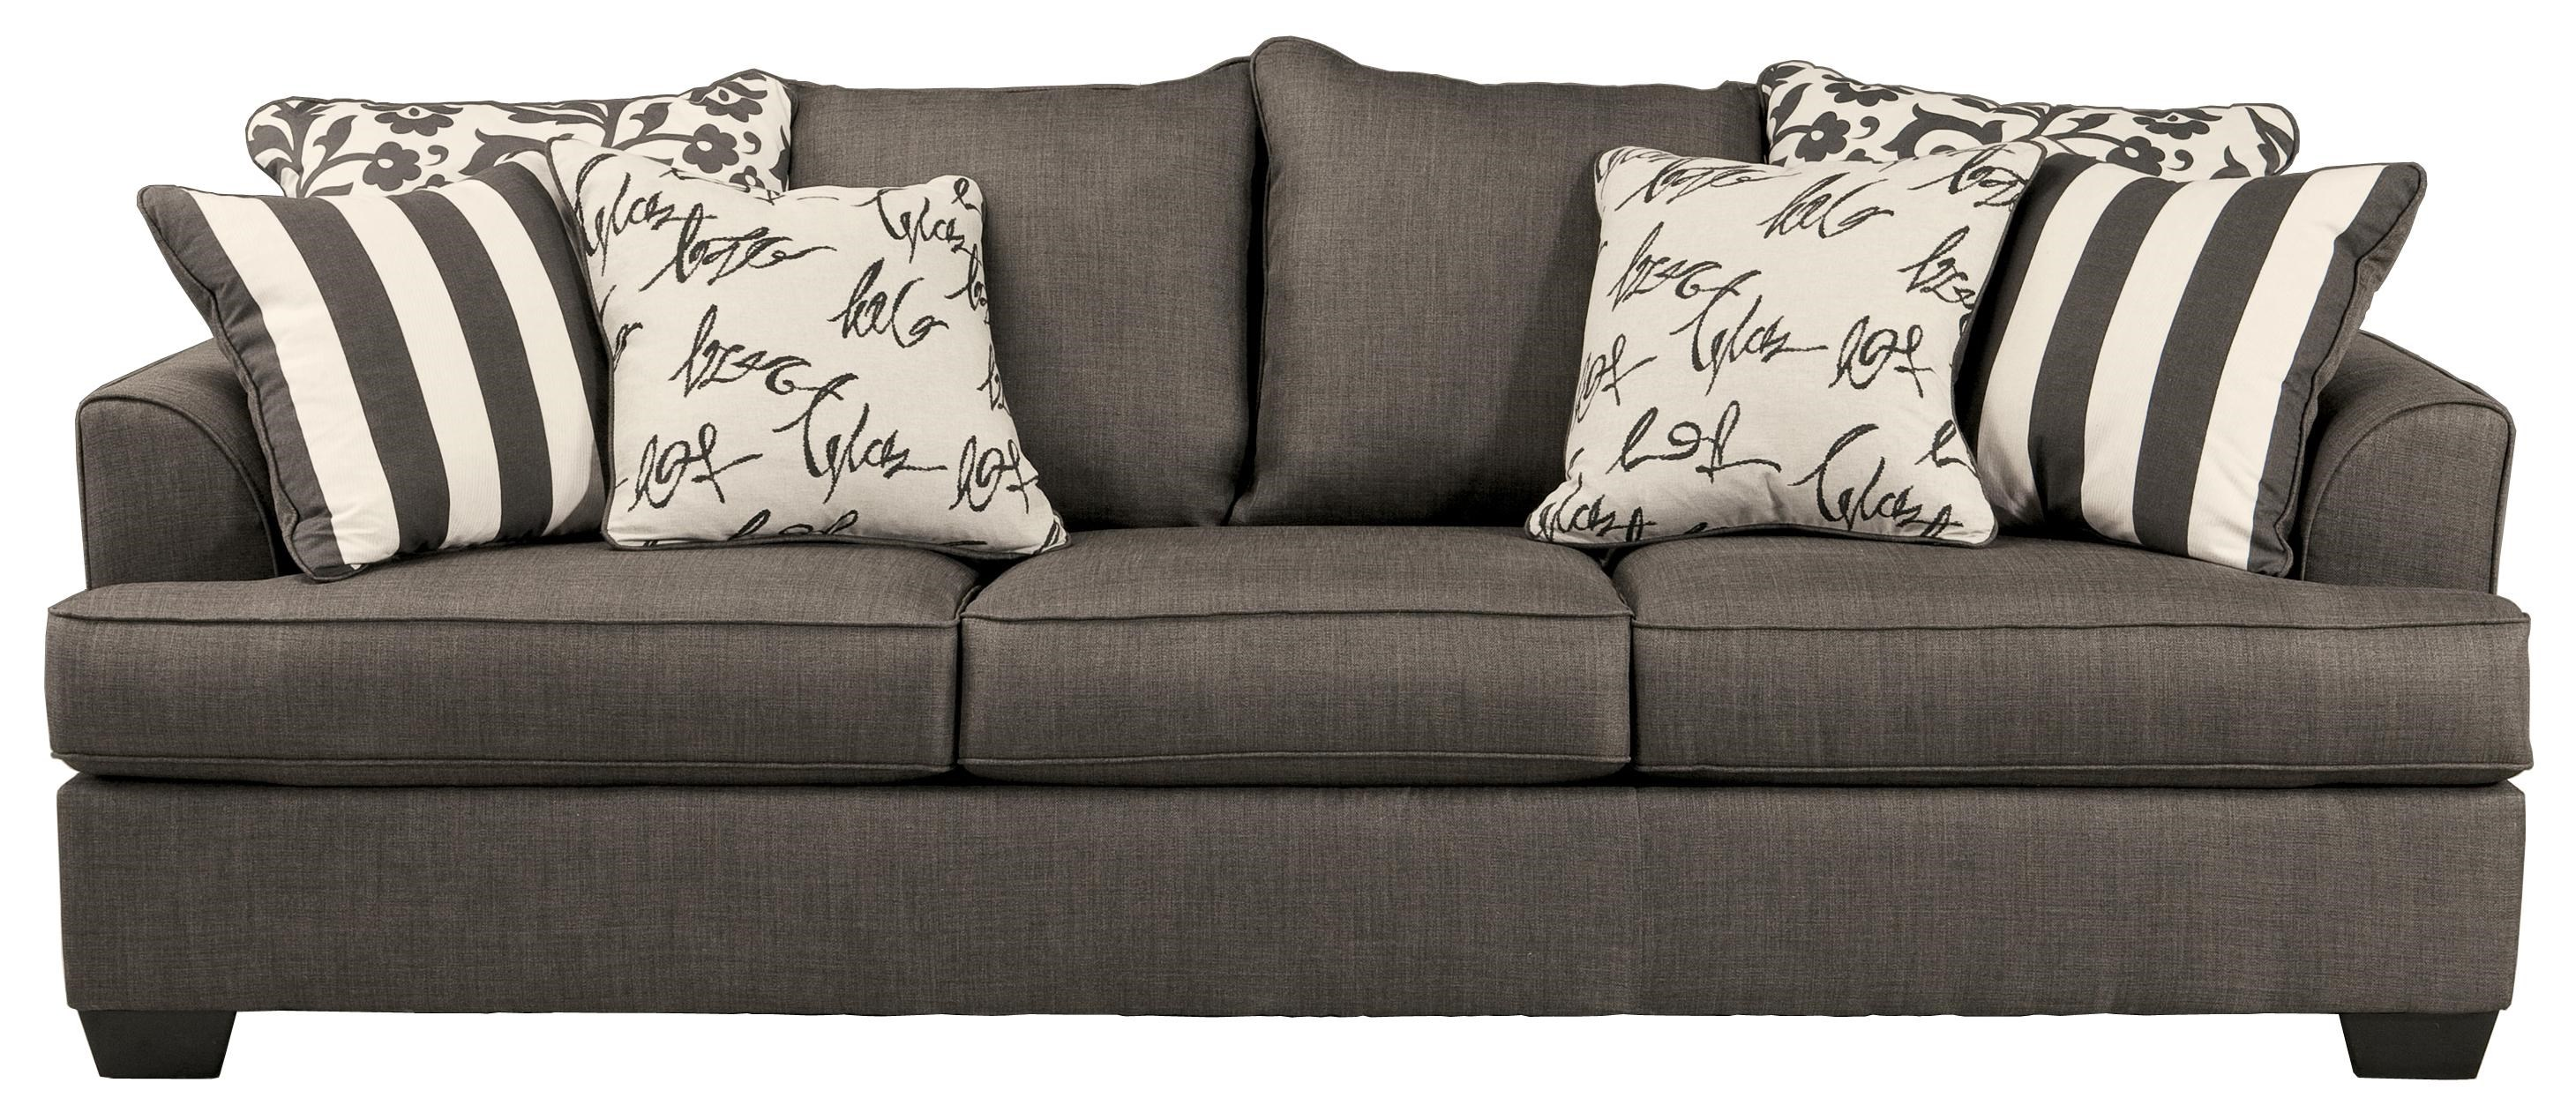 Signature Design by Ashley Central Park Sofa with